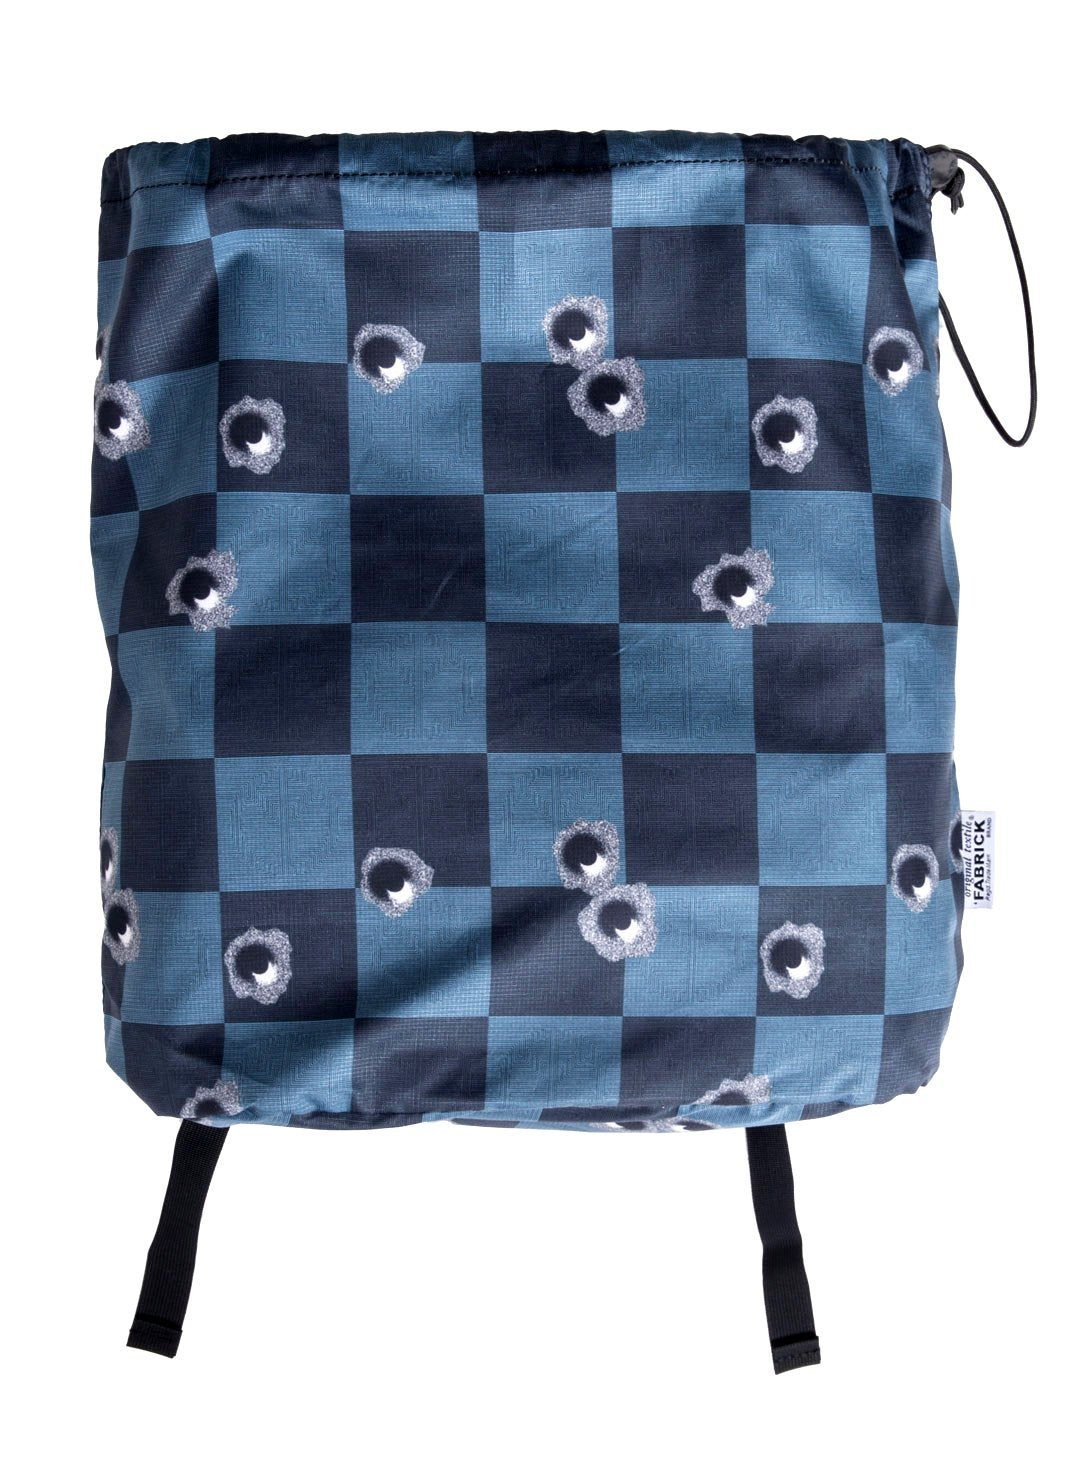 BABYLON L.A. LIGHT DRAWSTRING BACKPACK